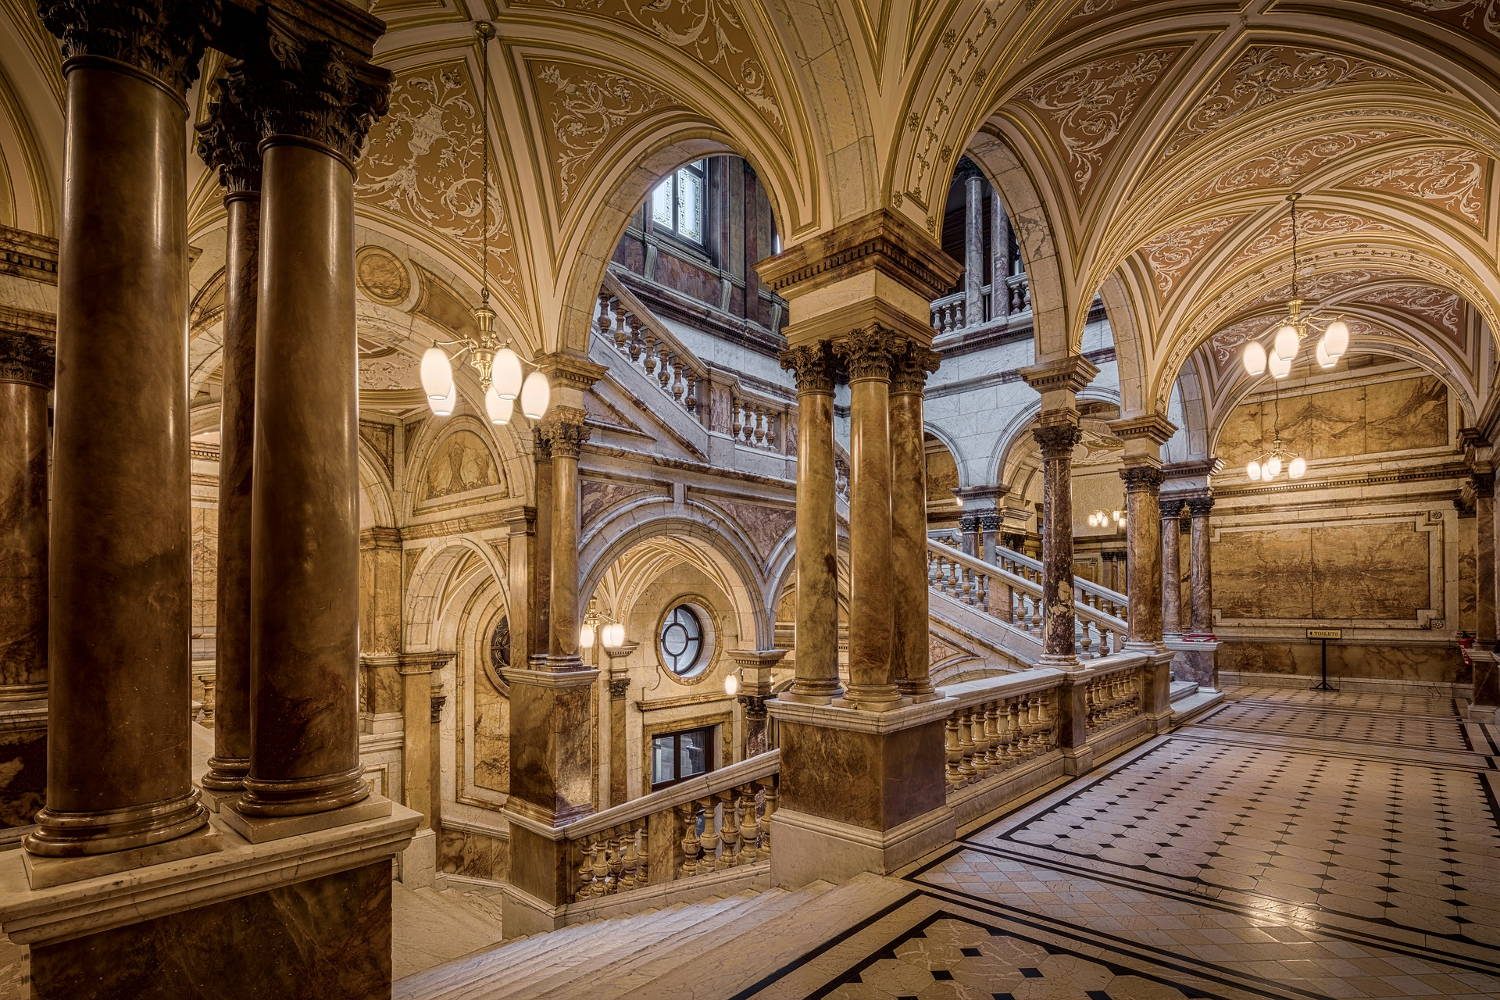 Glasgow City Chambers, Scotland, United Kingdom.